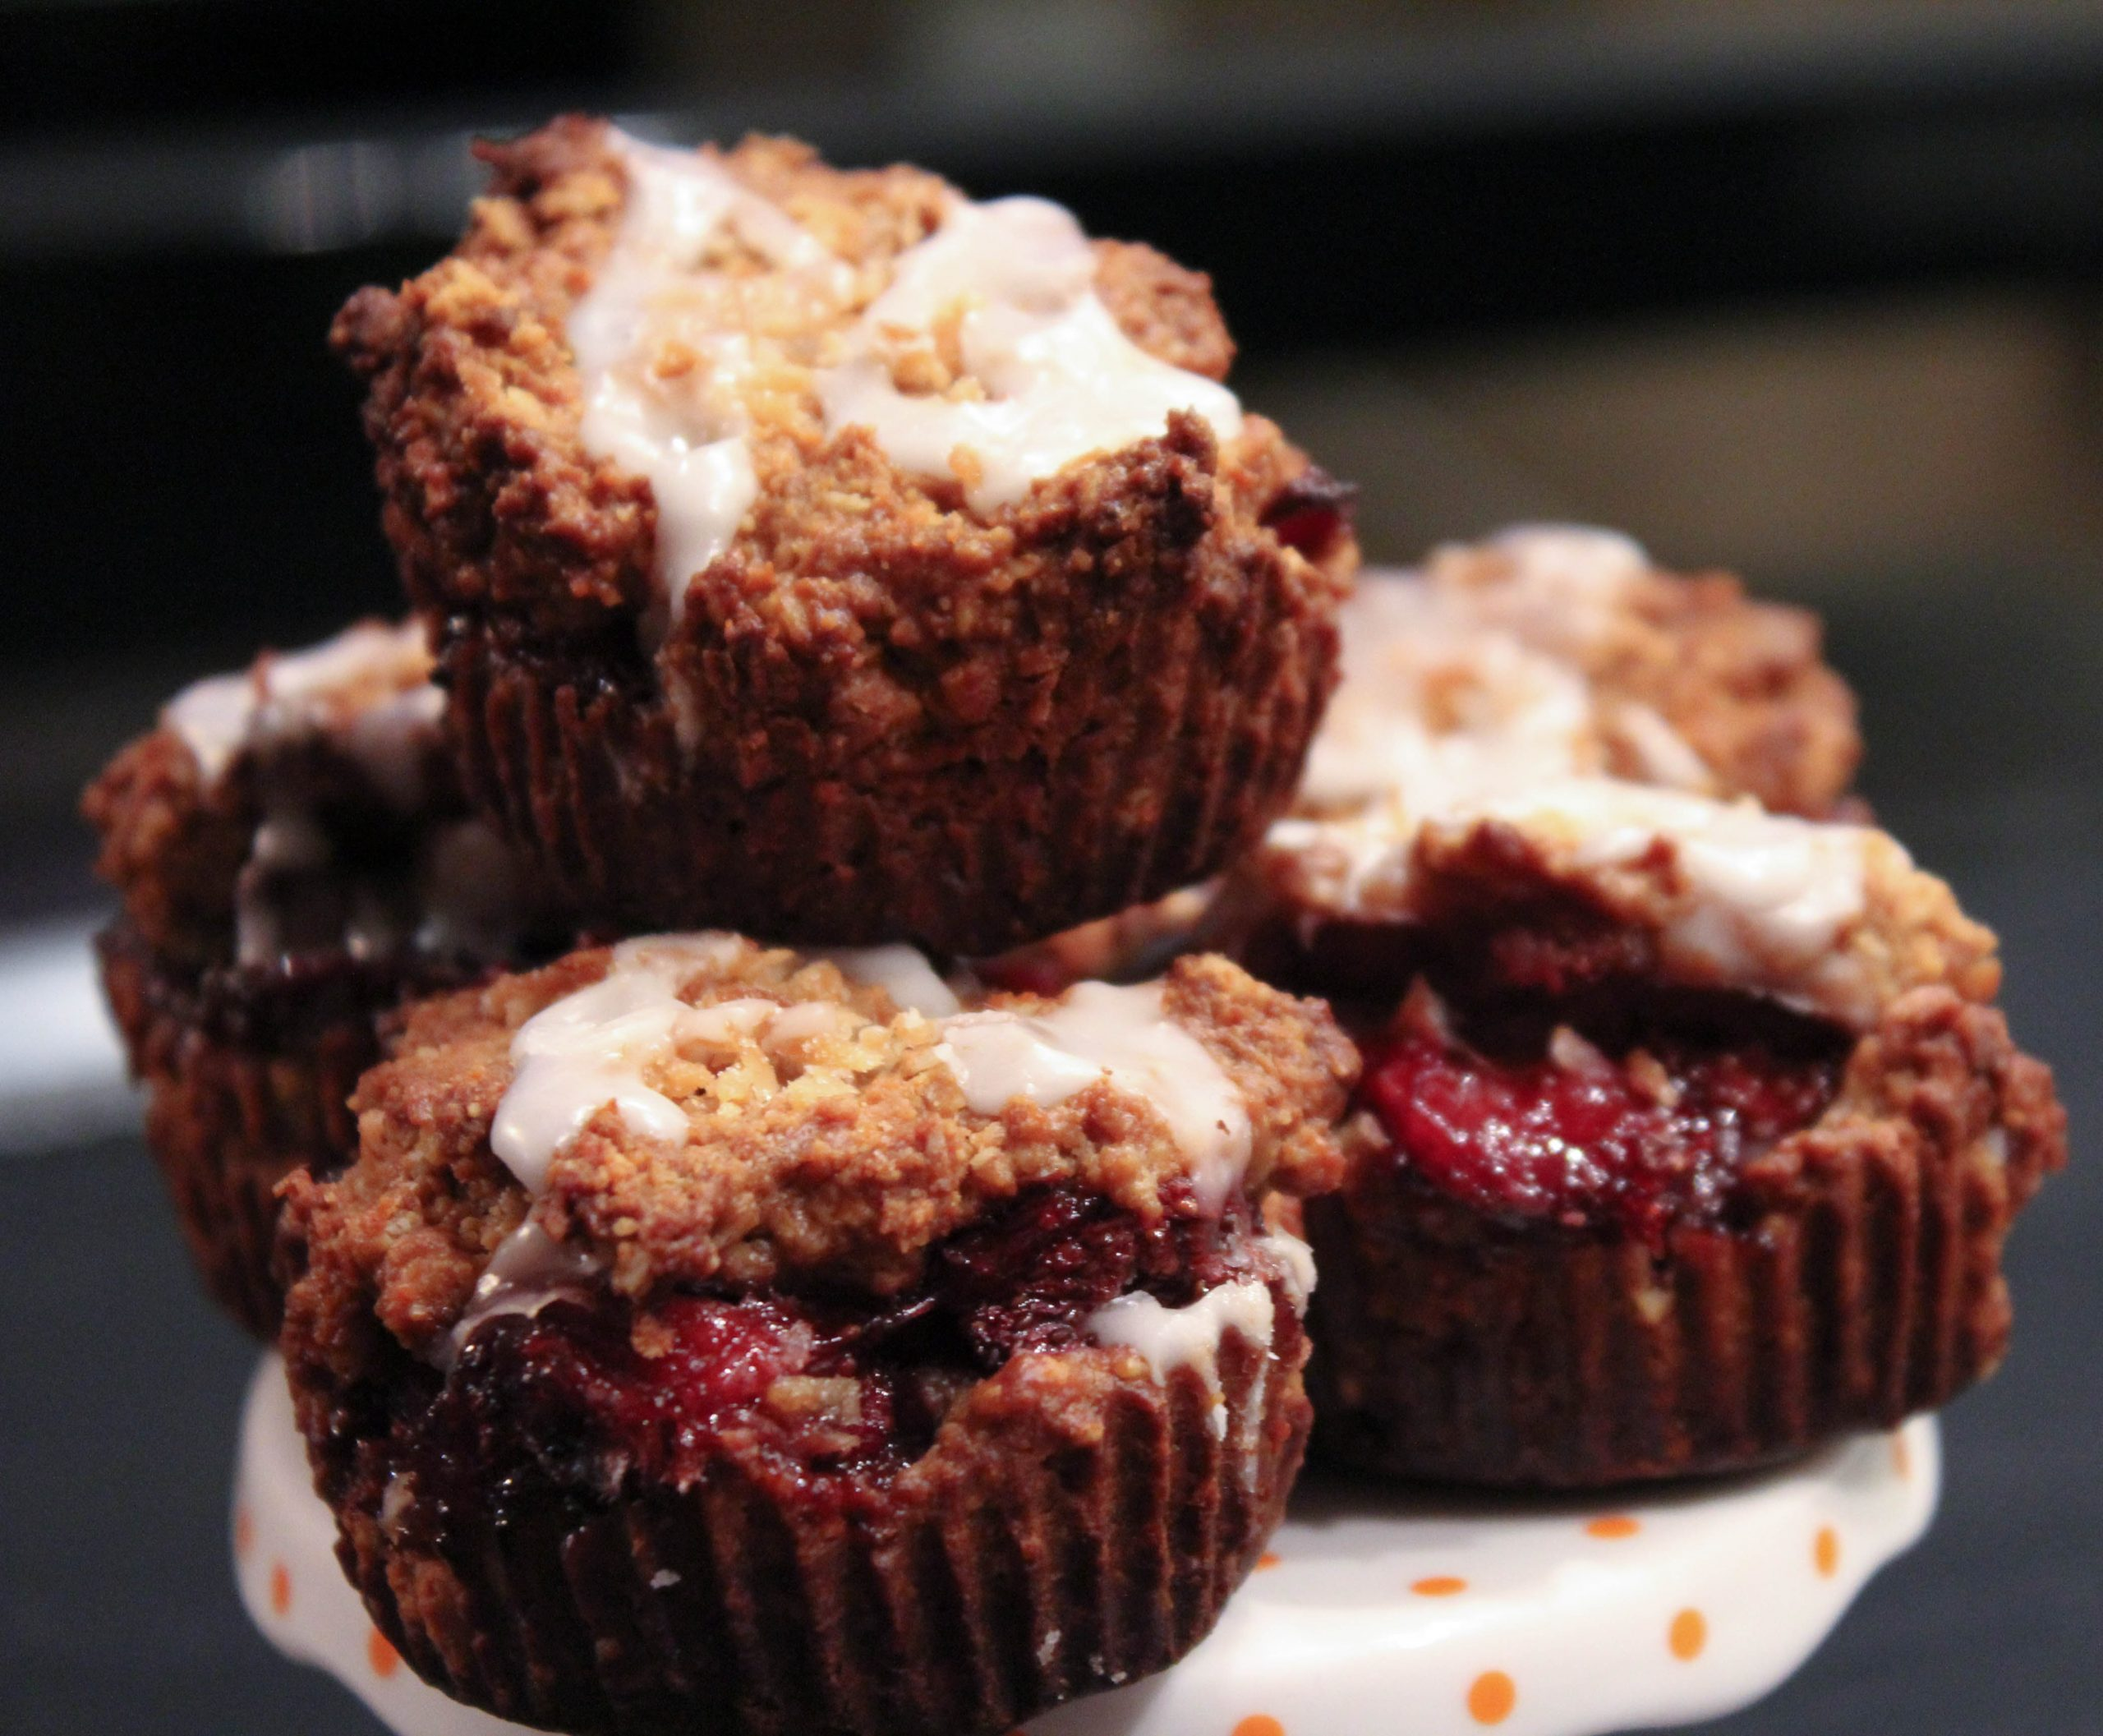 Strawberry Oatmeal Jam Cups